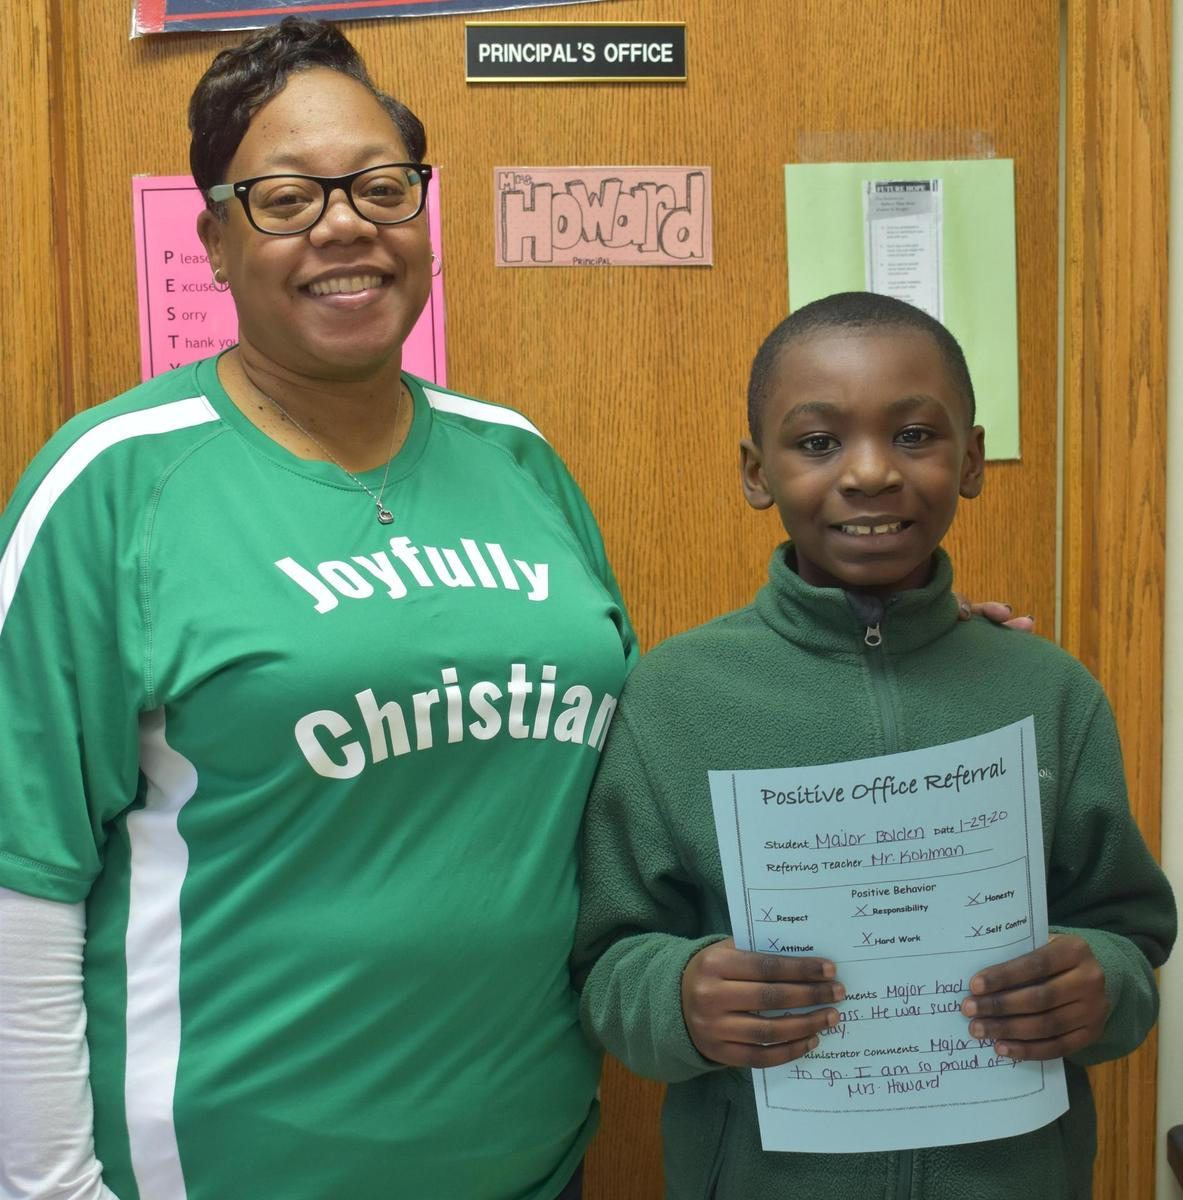 A student is celebrated for positive behavior